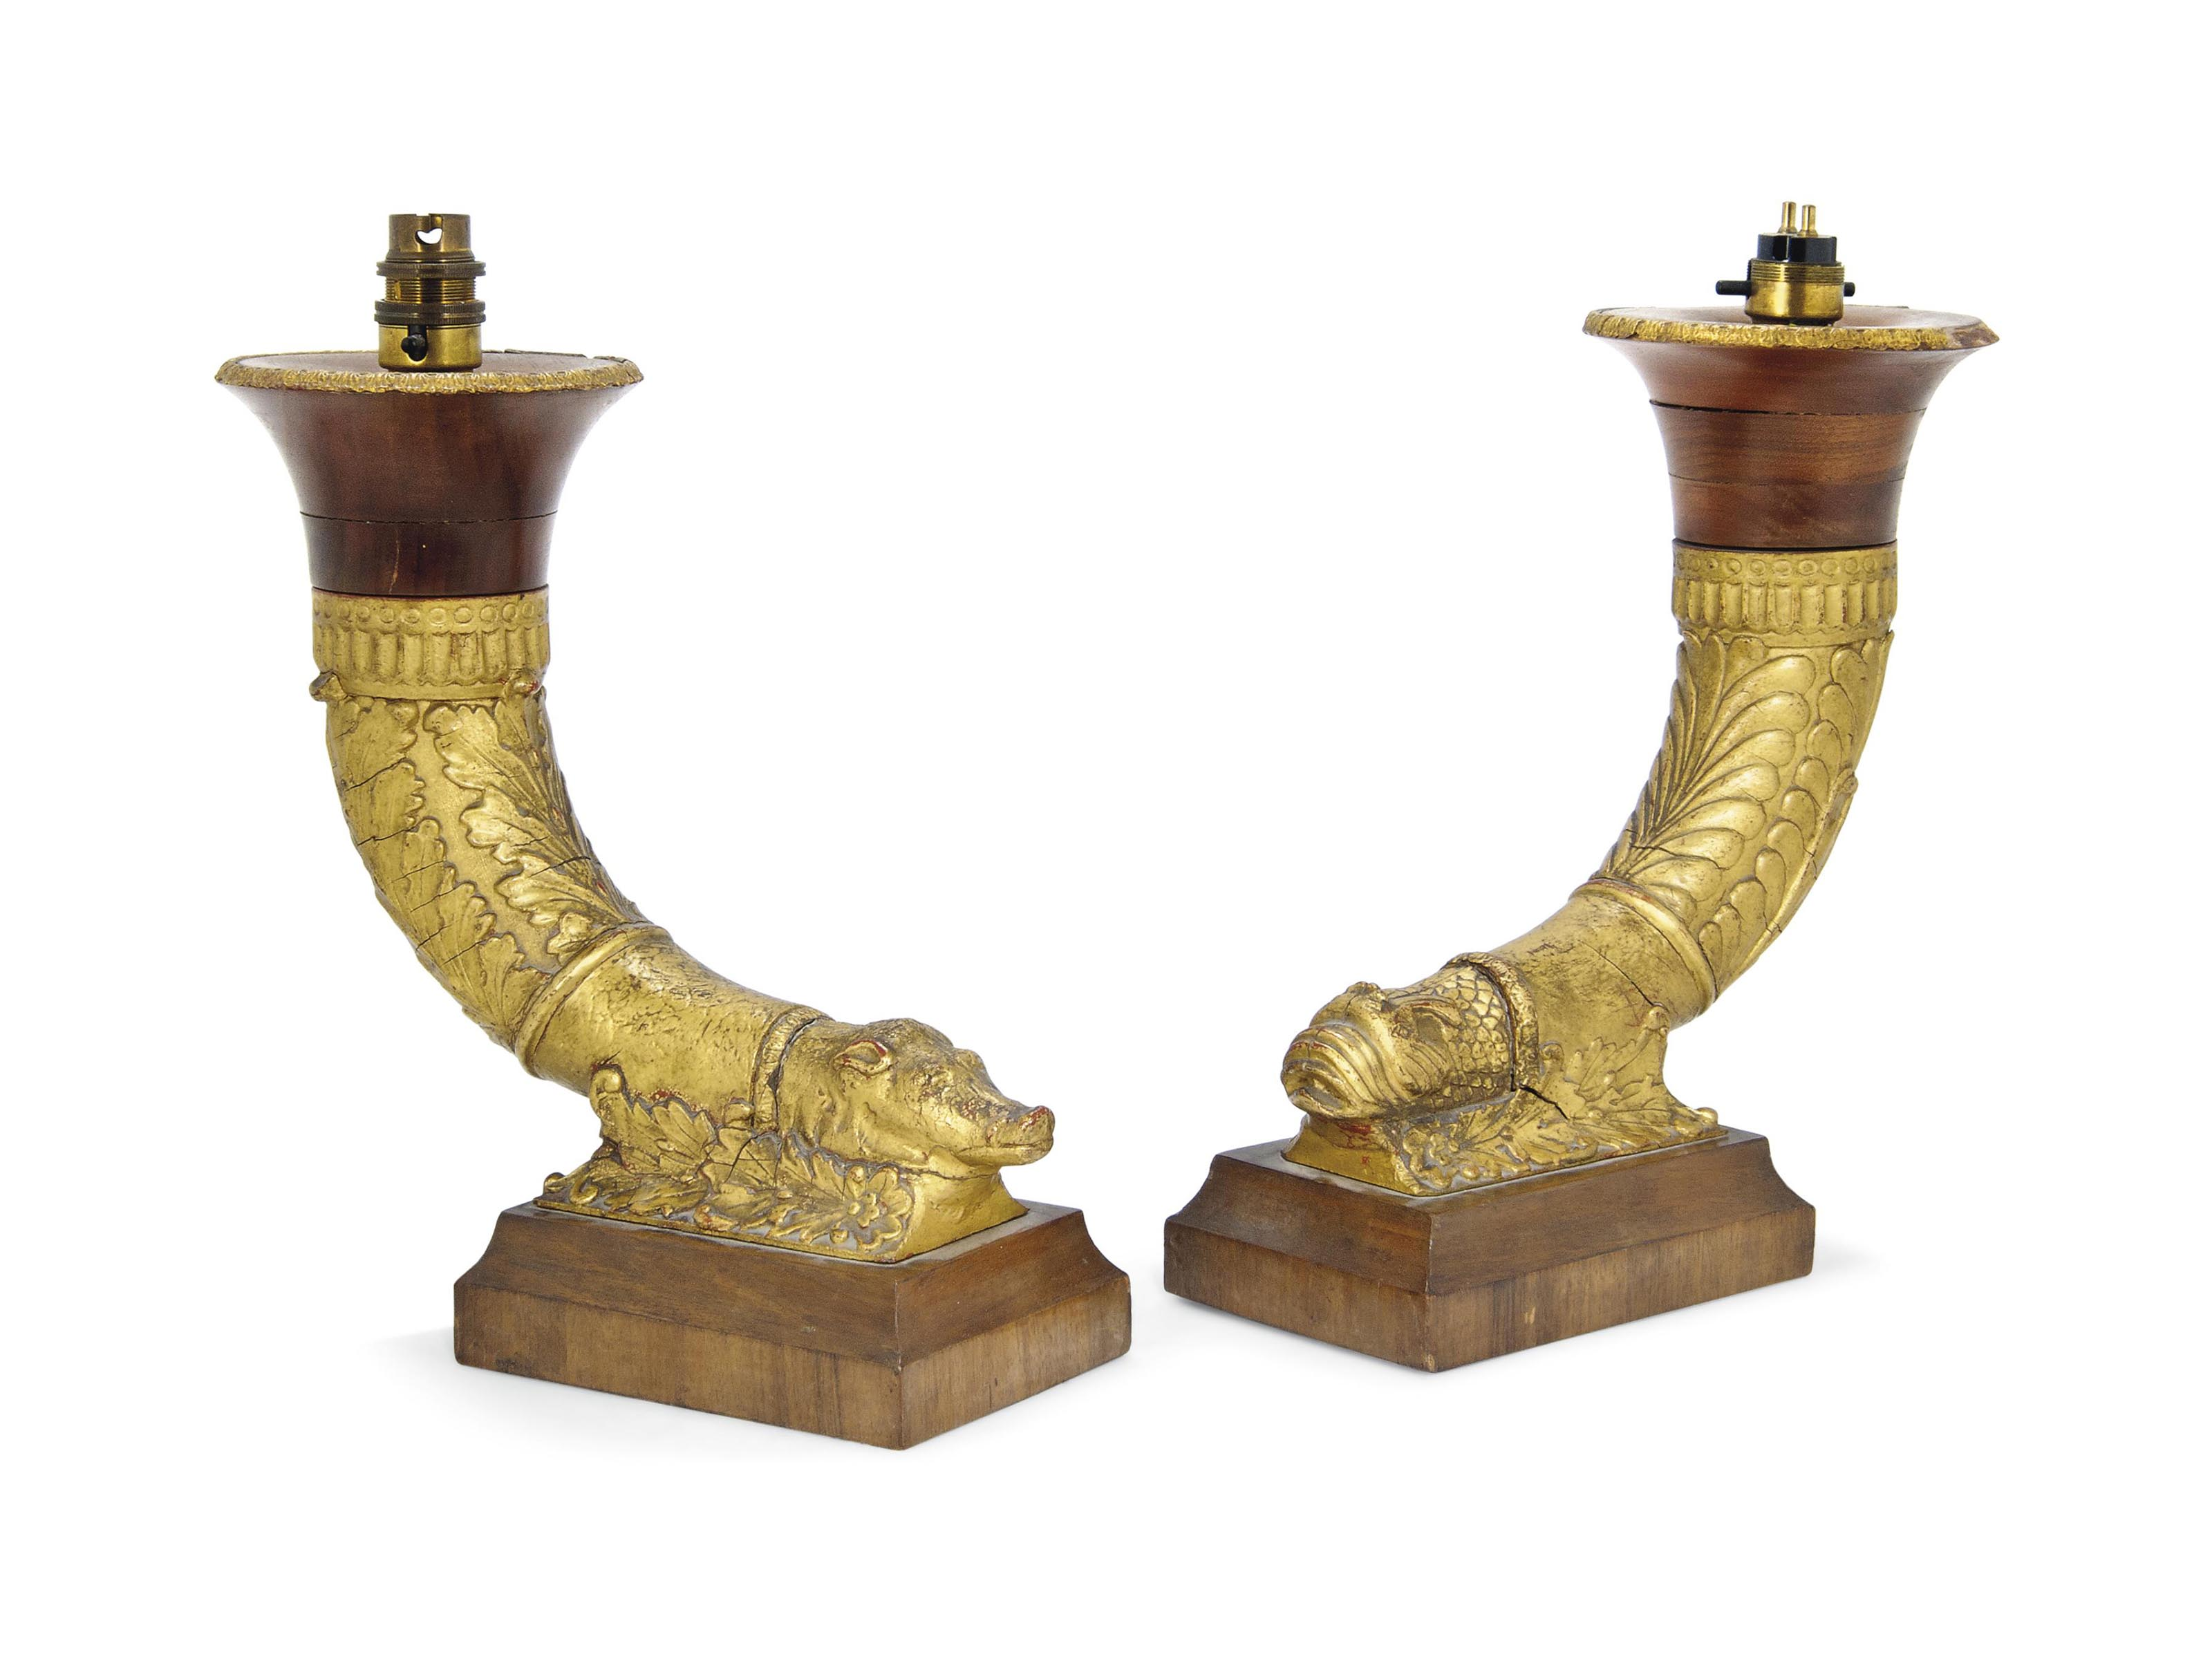 A PAIR OF WALNUT AND GILT-GESS